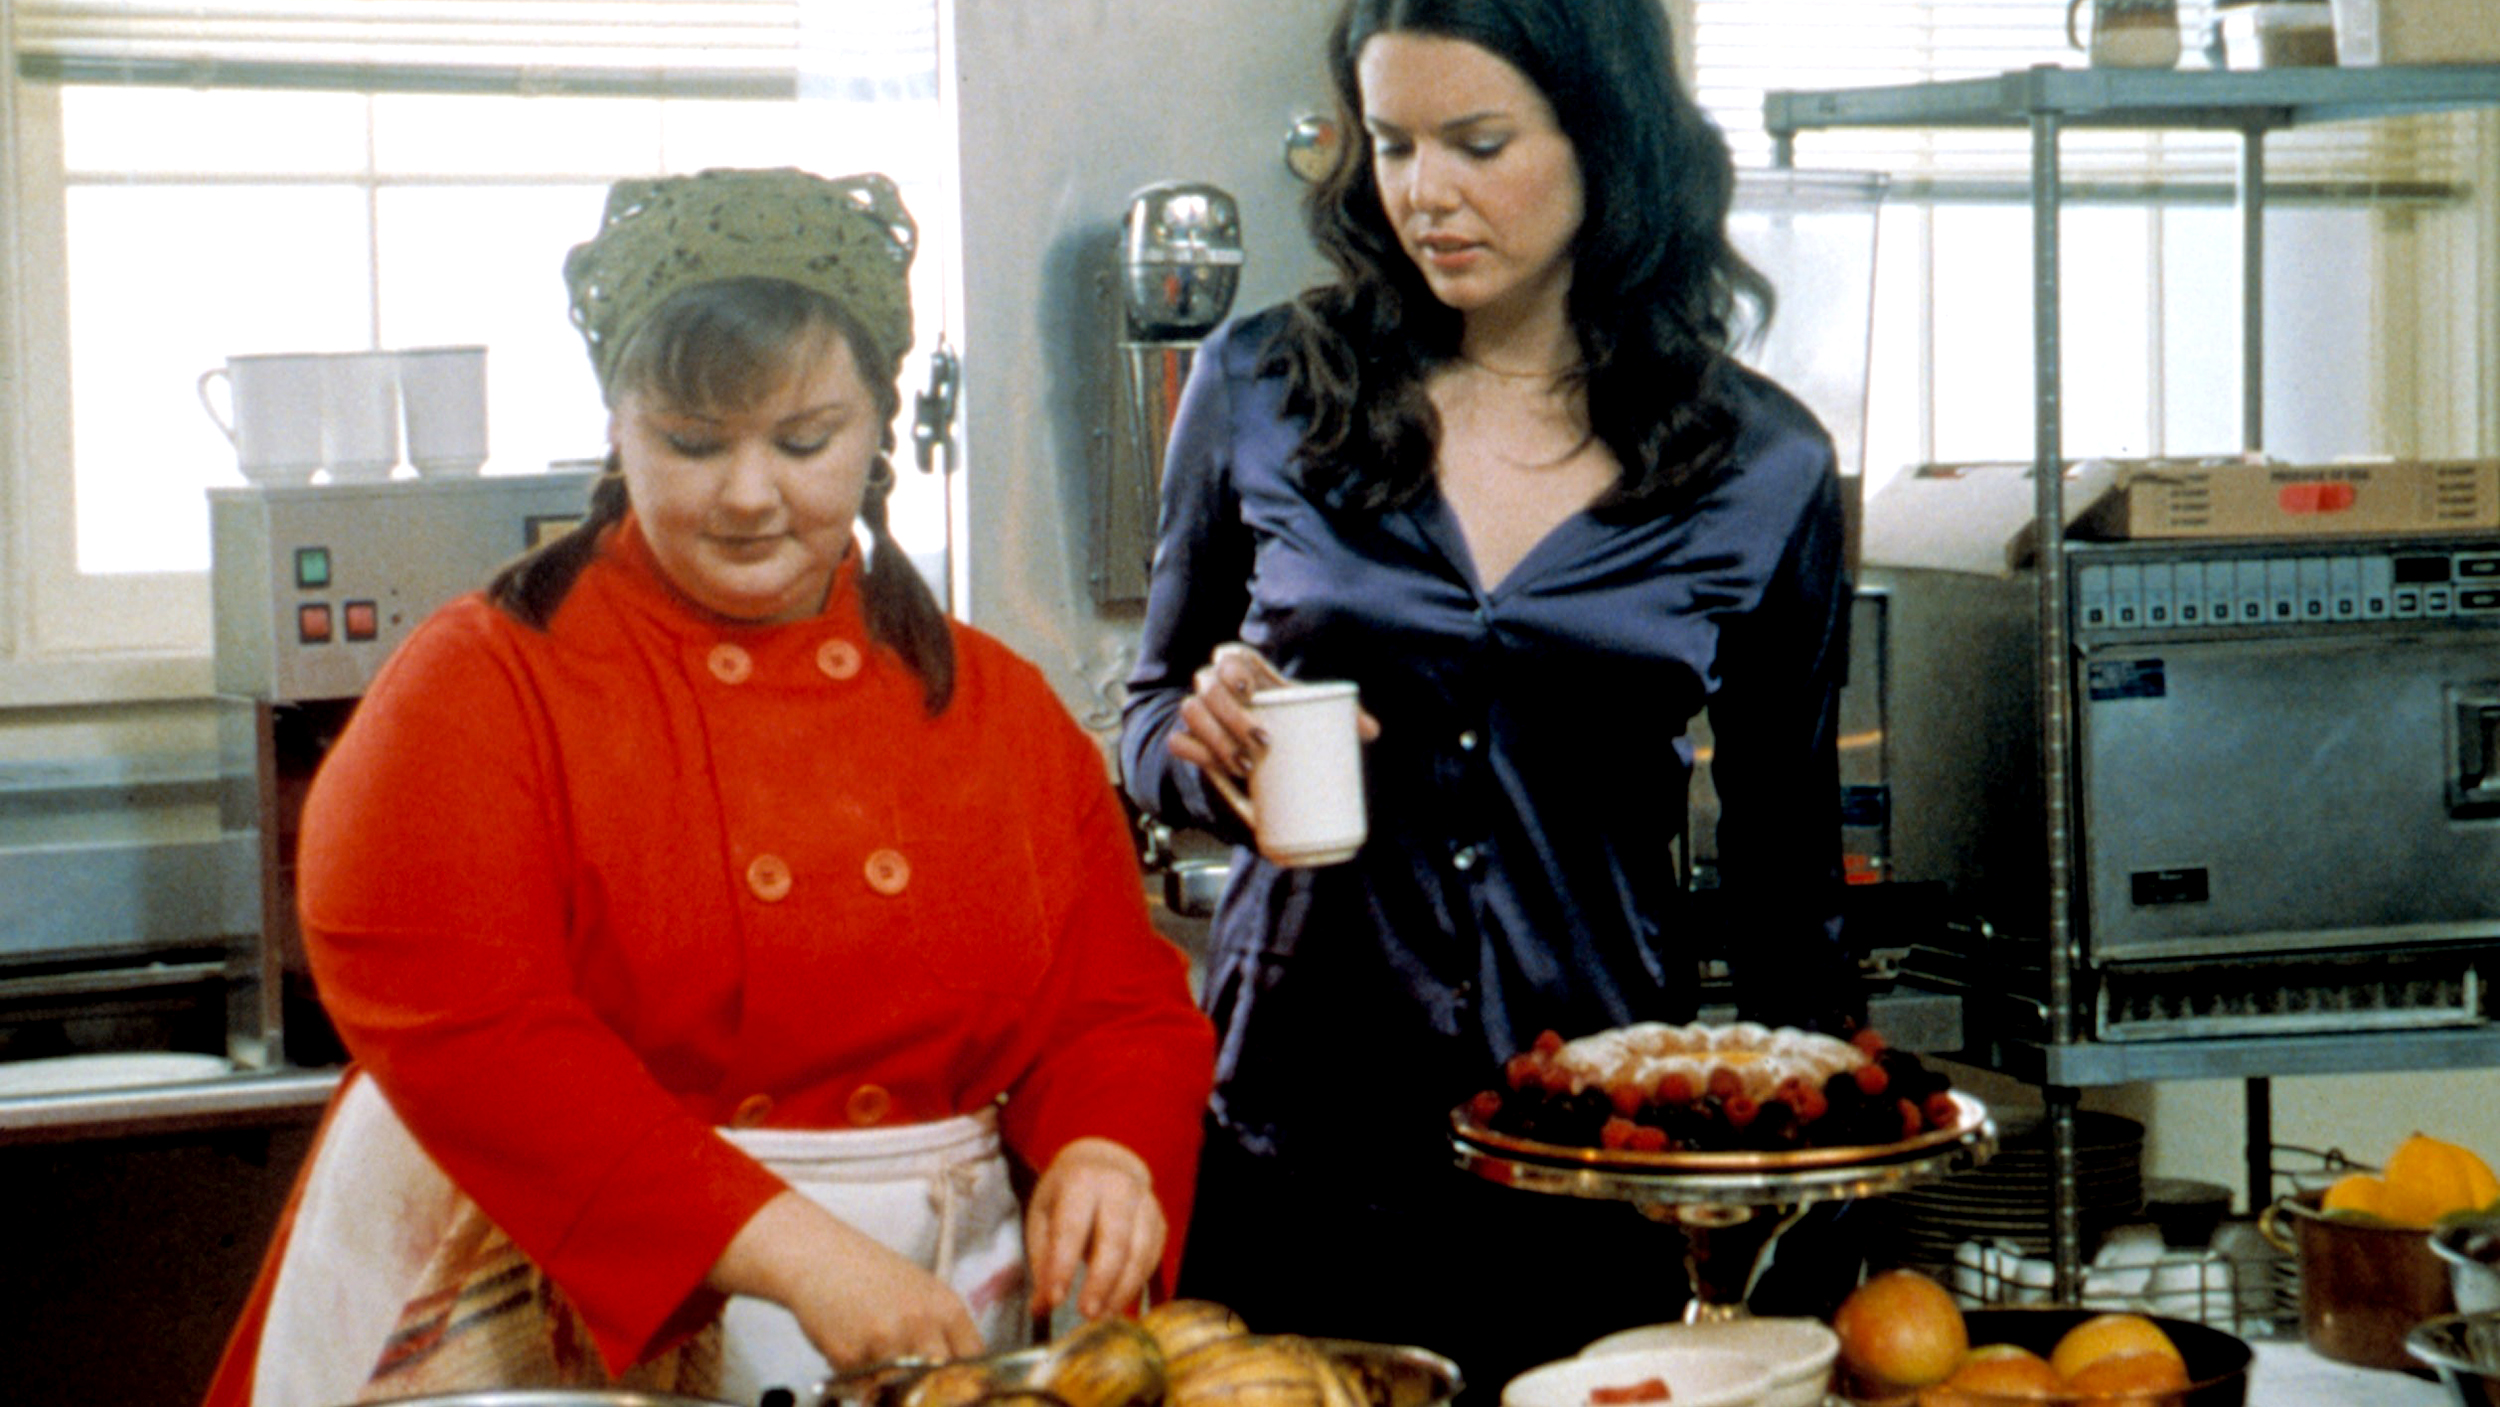 Gilmore Girls A Year In The Life Wallpaper Melissa Mccarthy Returns As Sookie On Gilmore Girls Set